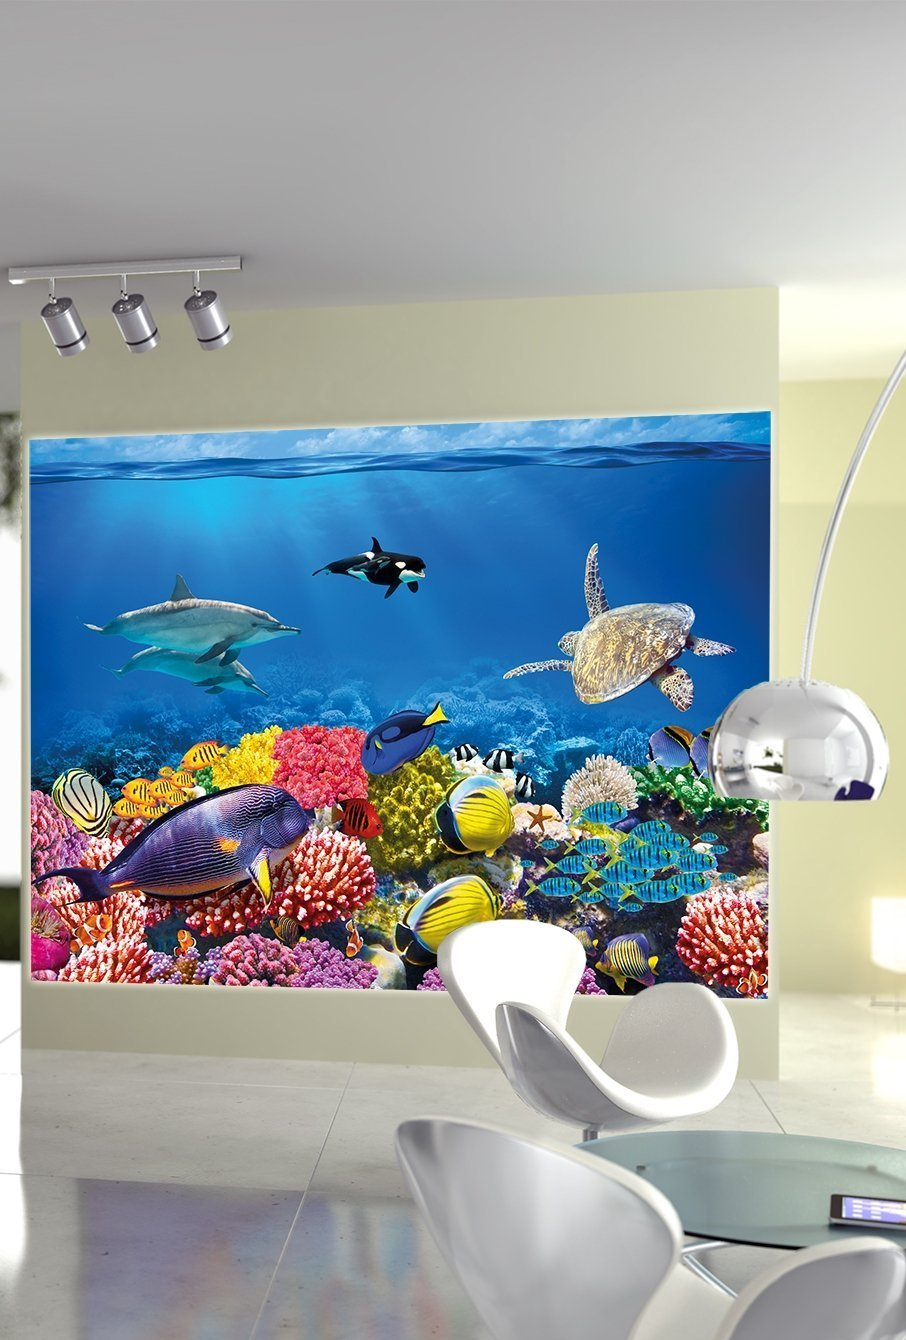 amazon com undersea coral reef photo wall paper aquarium fish amazon com undersea coral reef photo wall paper aquarium fish sea mural xxl undersea underwater world wall decoration great art 55 inch x 39 4 inch